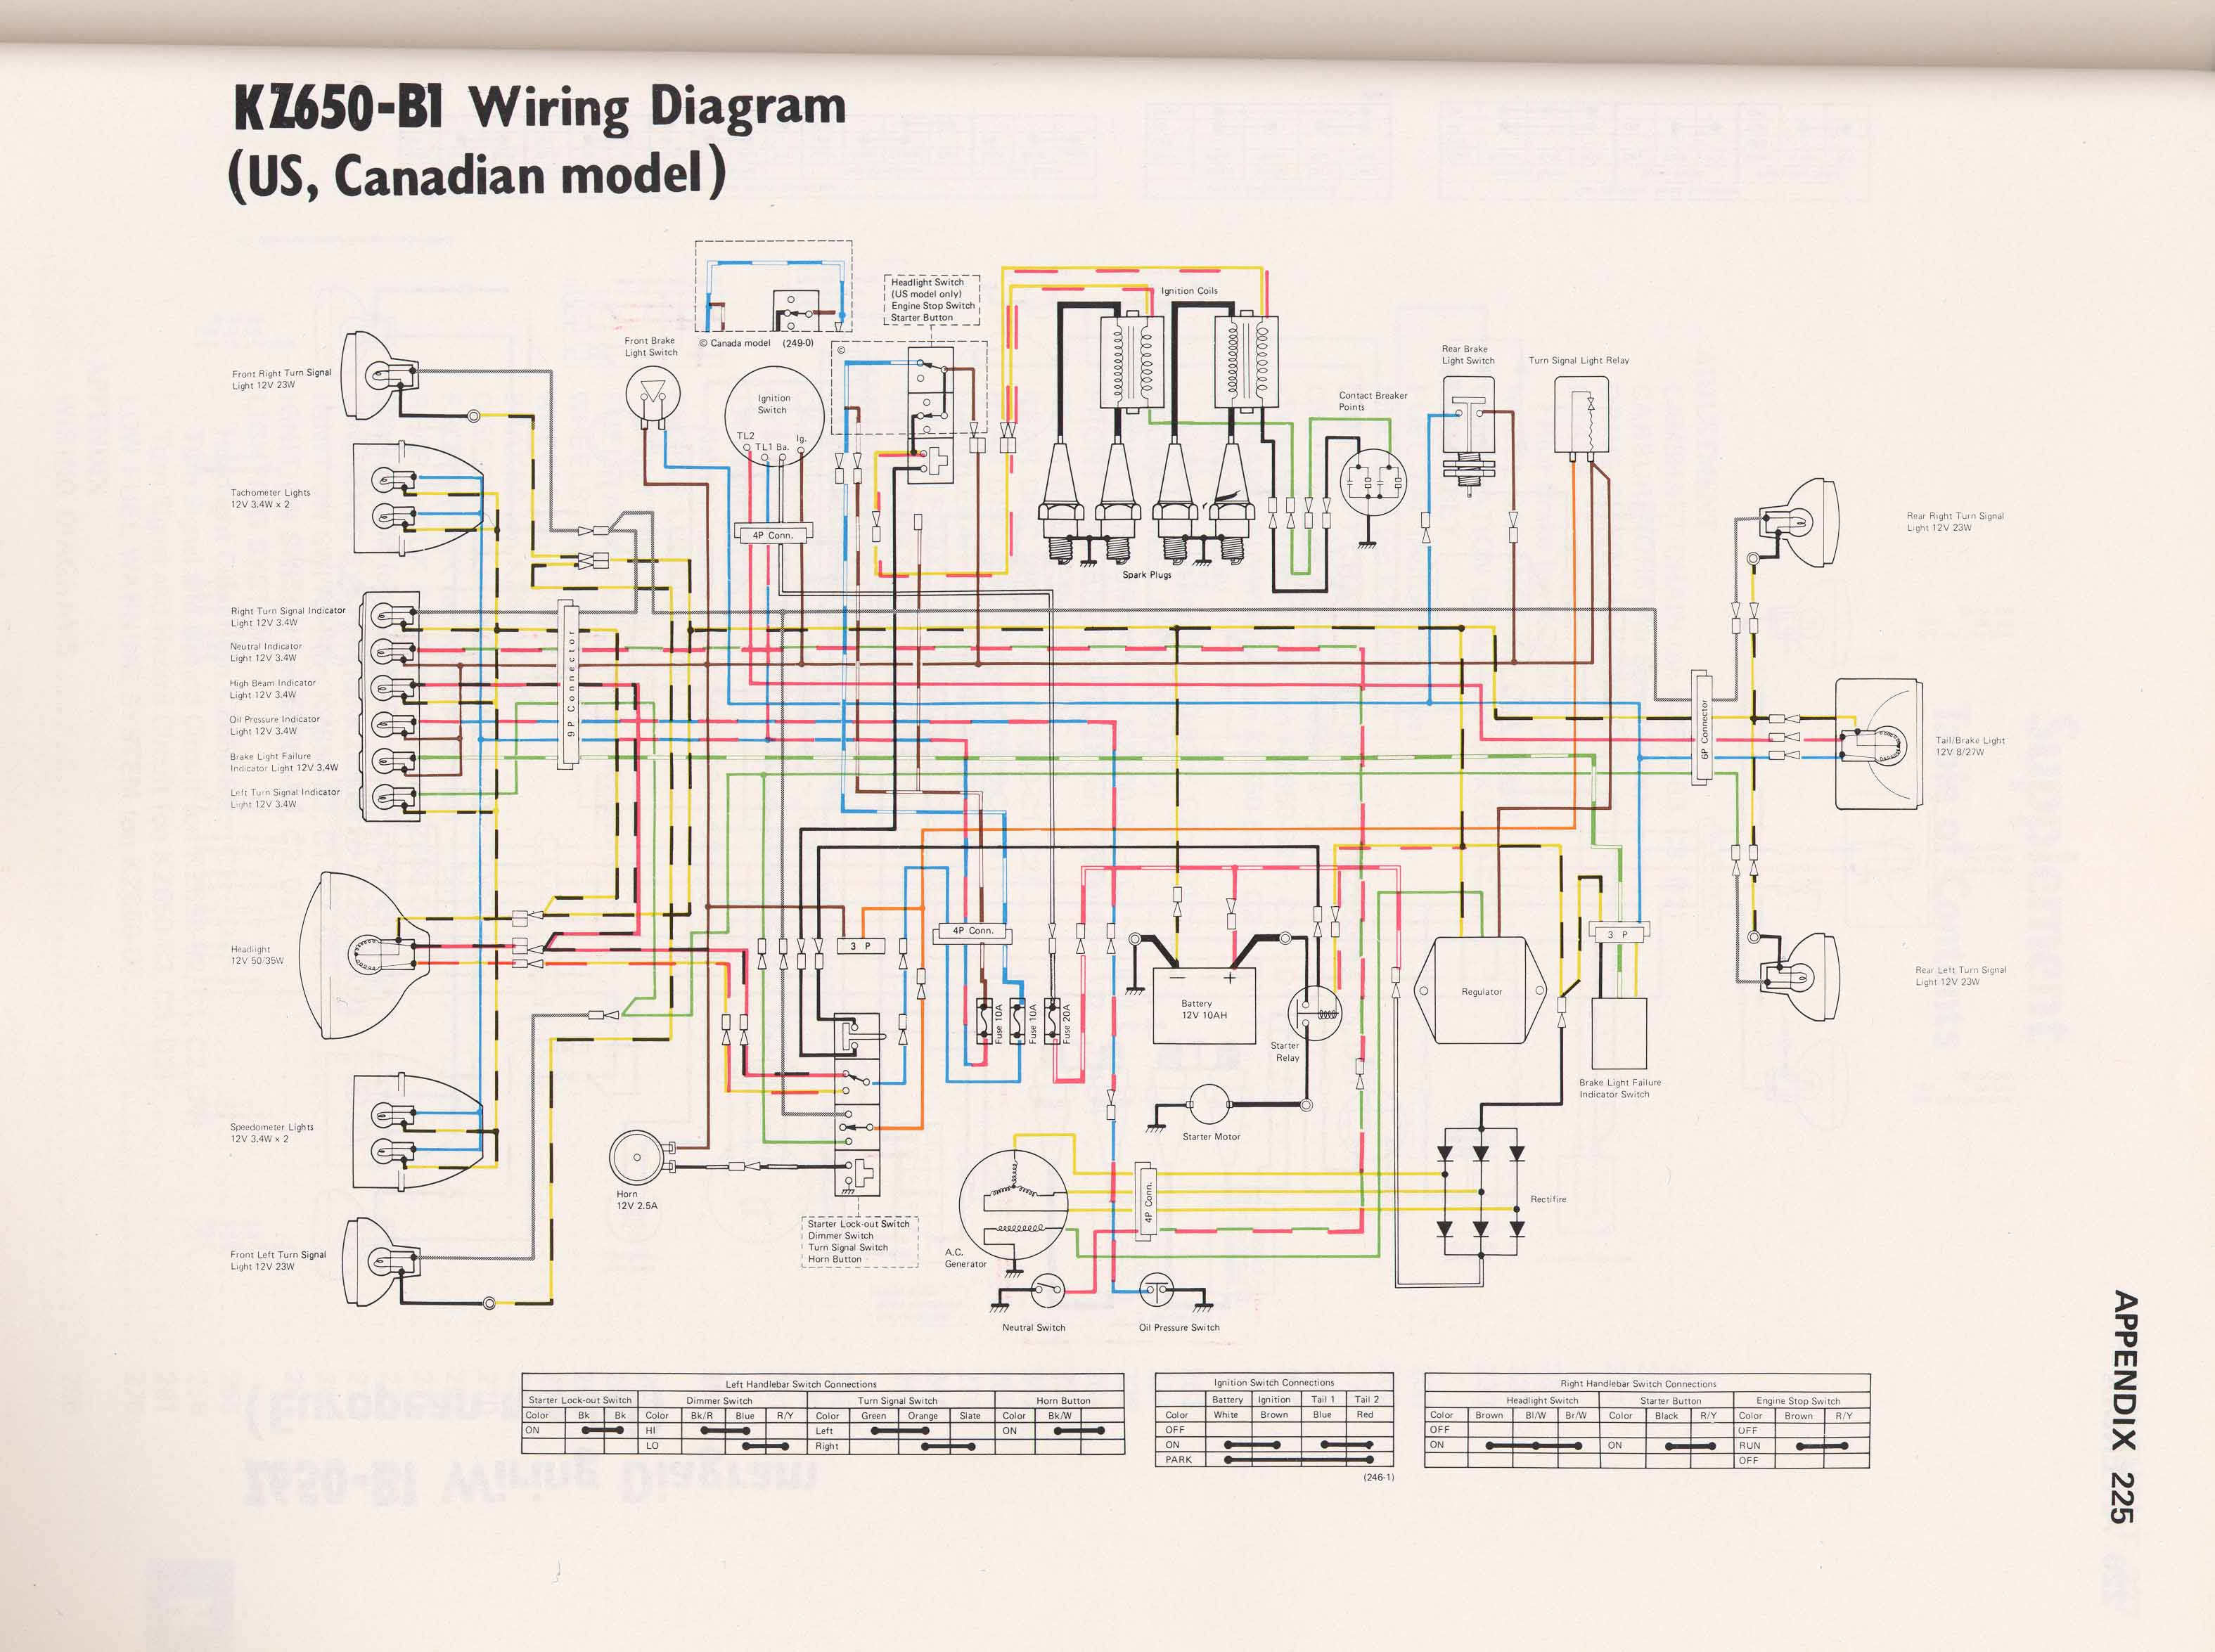 KZ650 B1 kz650 info wiring diagrams cdi box wiring diagram at suagrazia.org